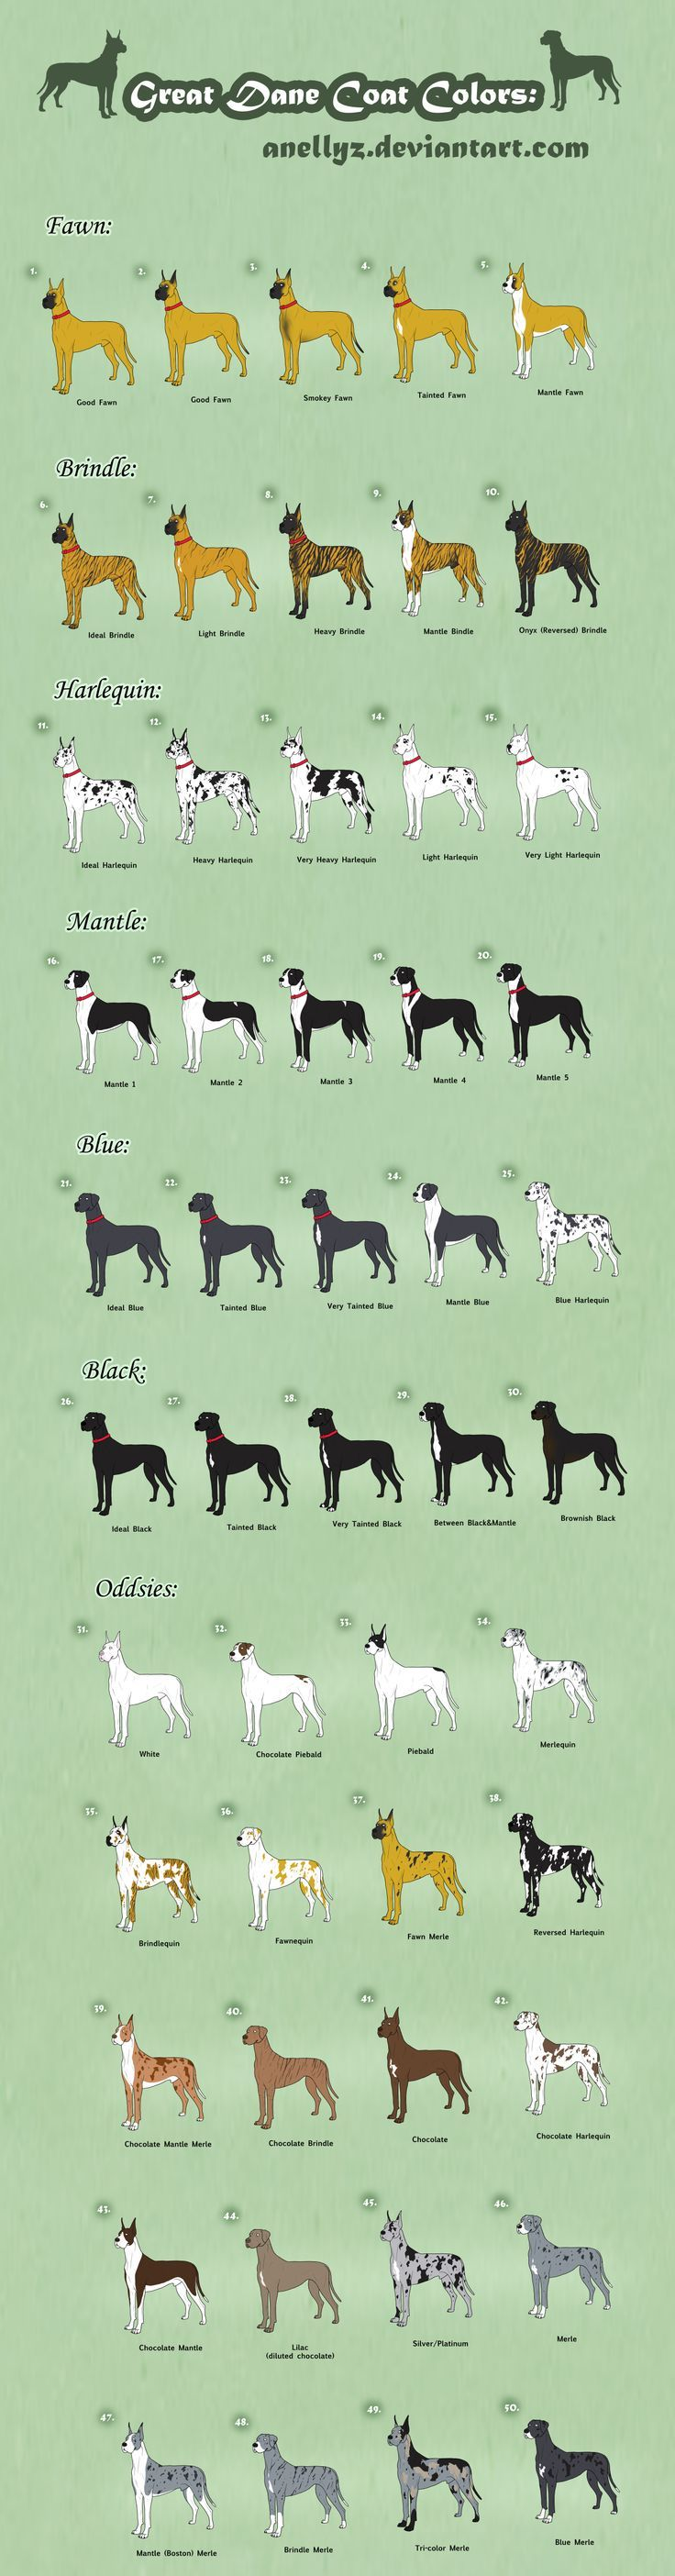 Great dane growth chart growth charts chart and dog geenschuldenfo Choice Image